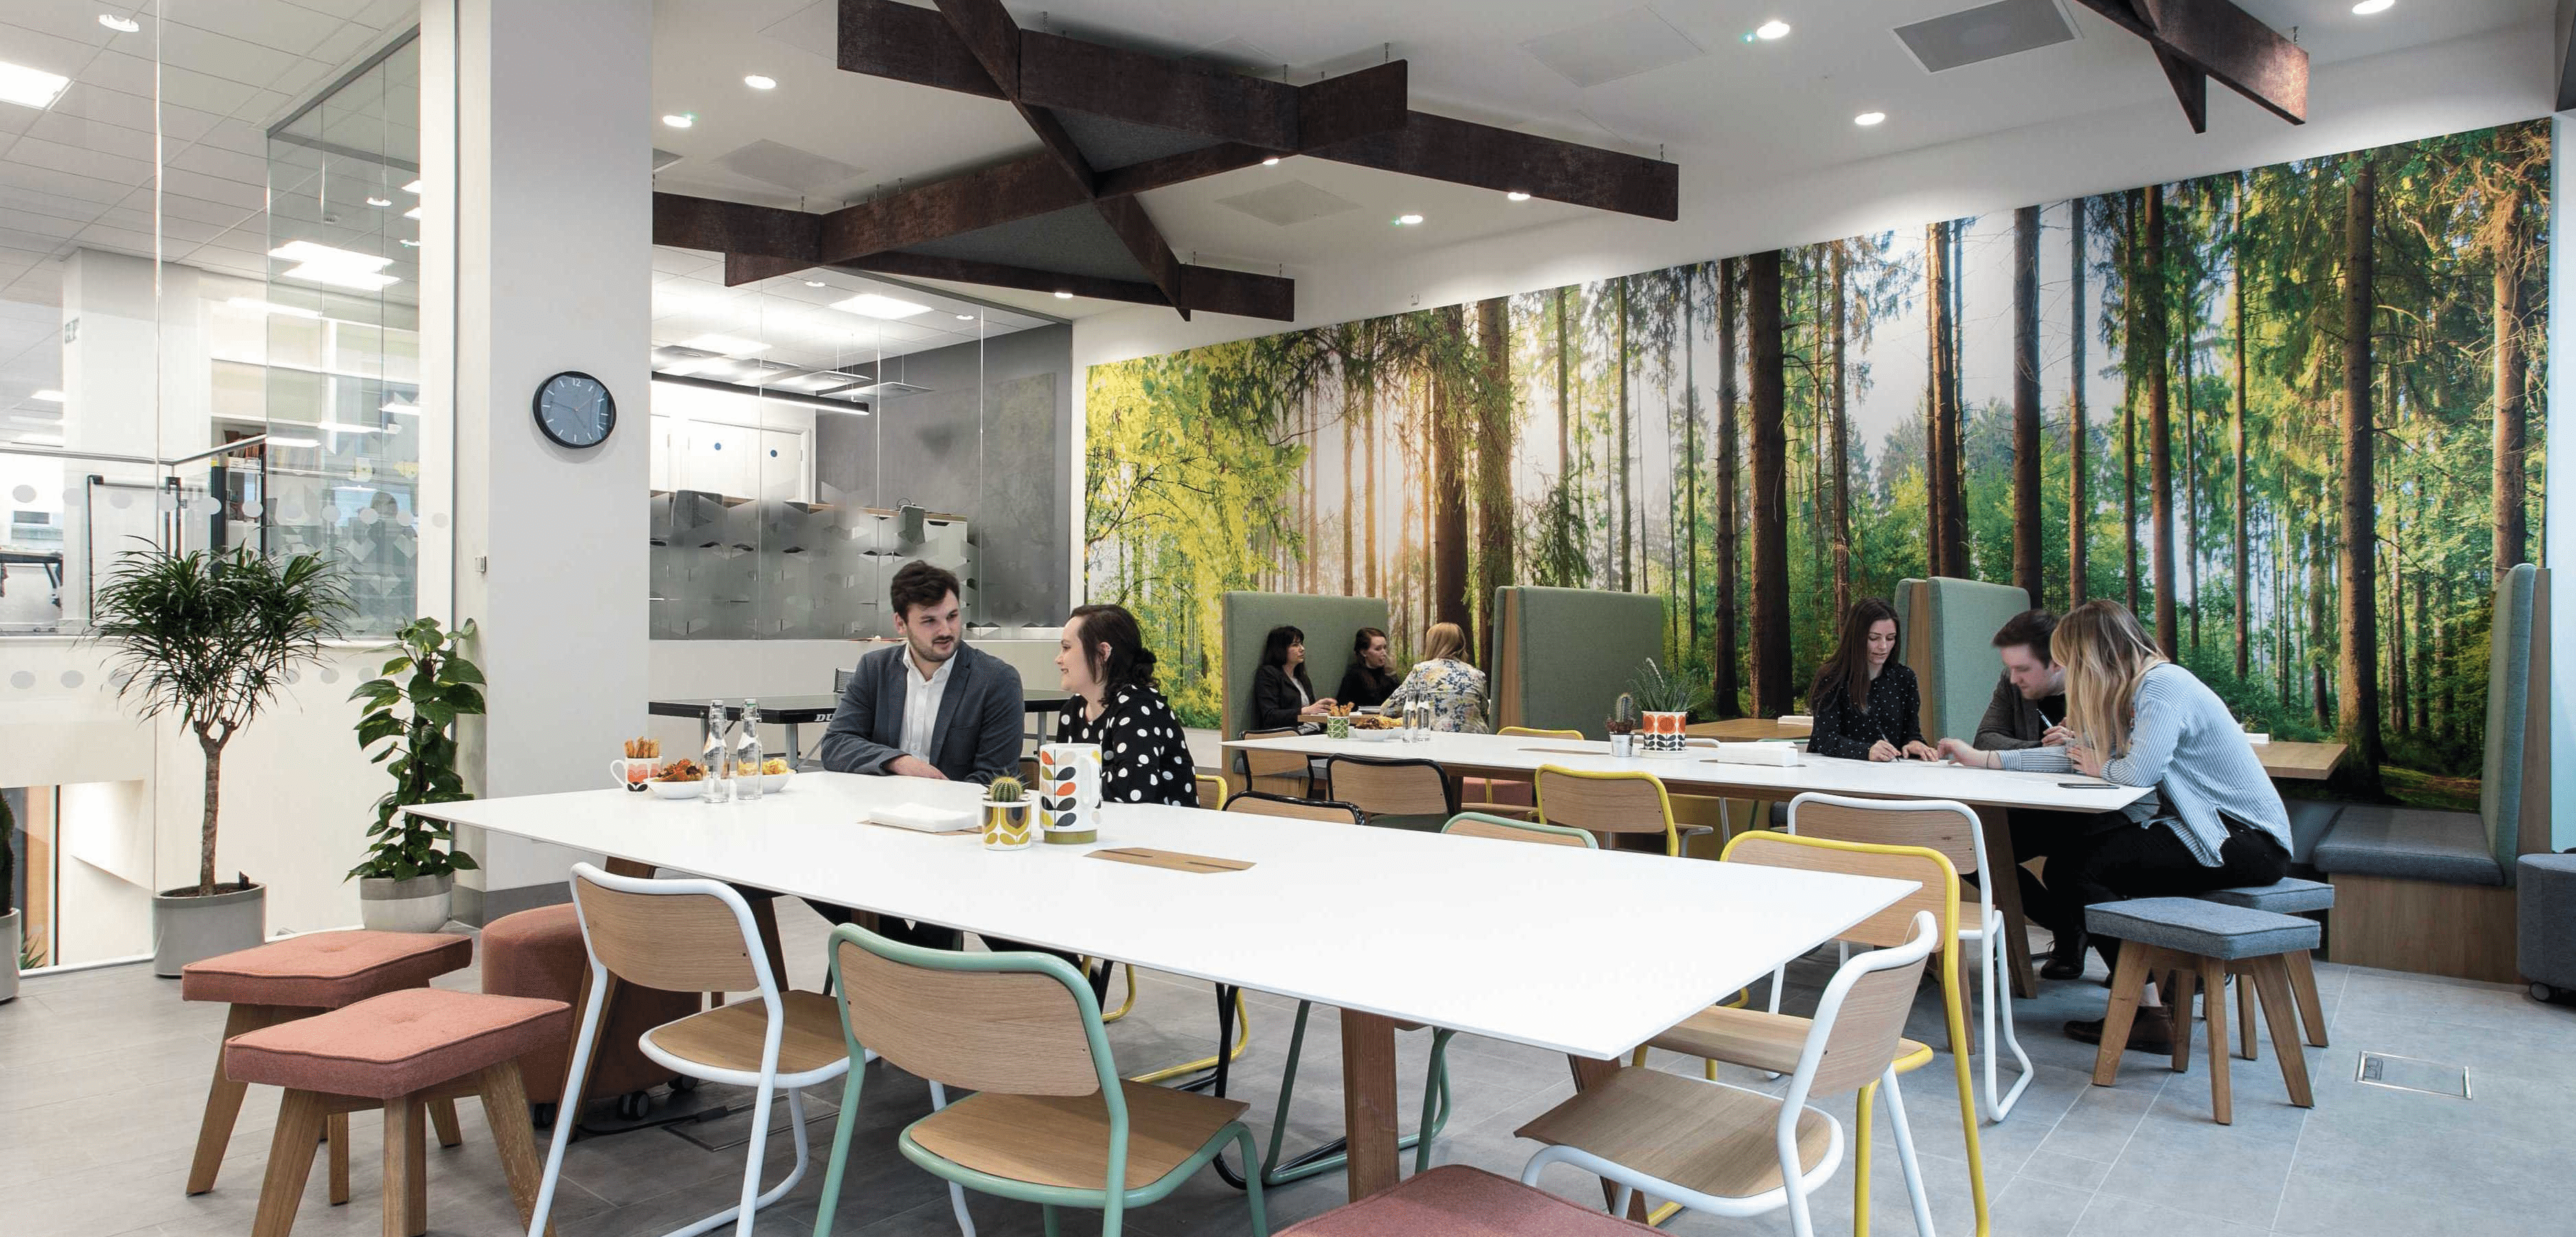 Main breakout area with forest wall graphic.